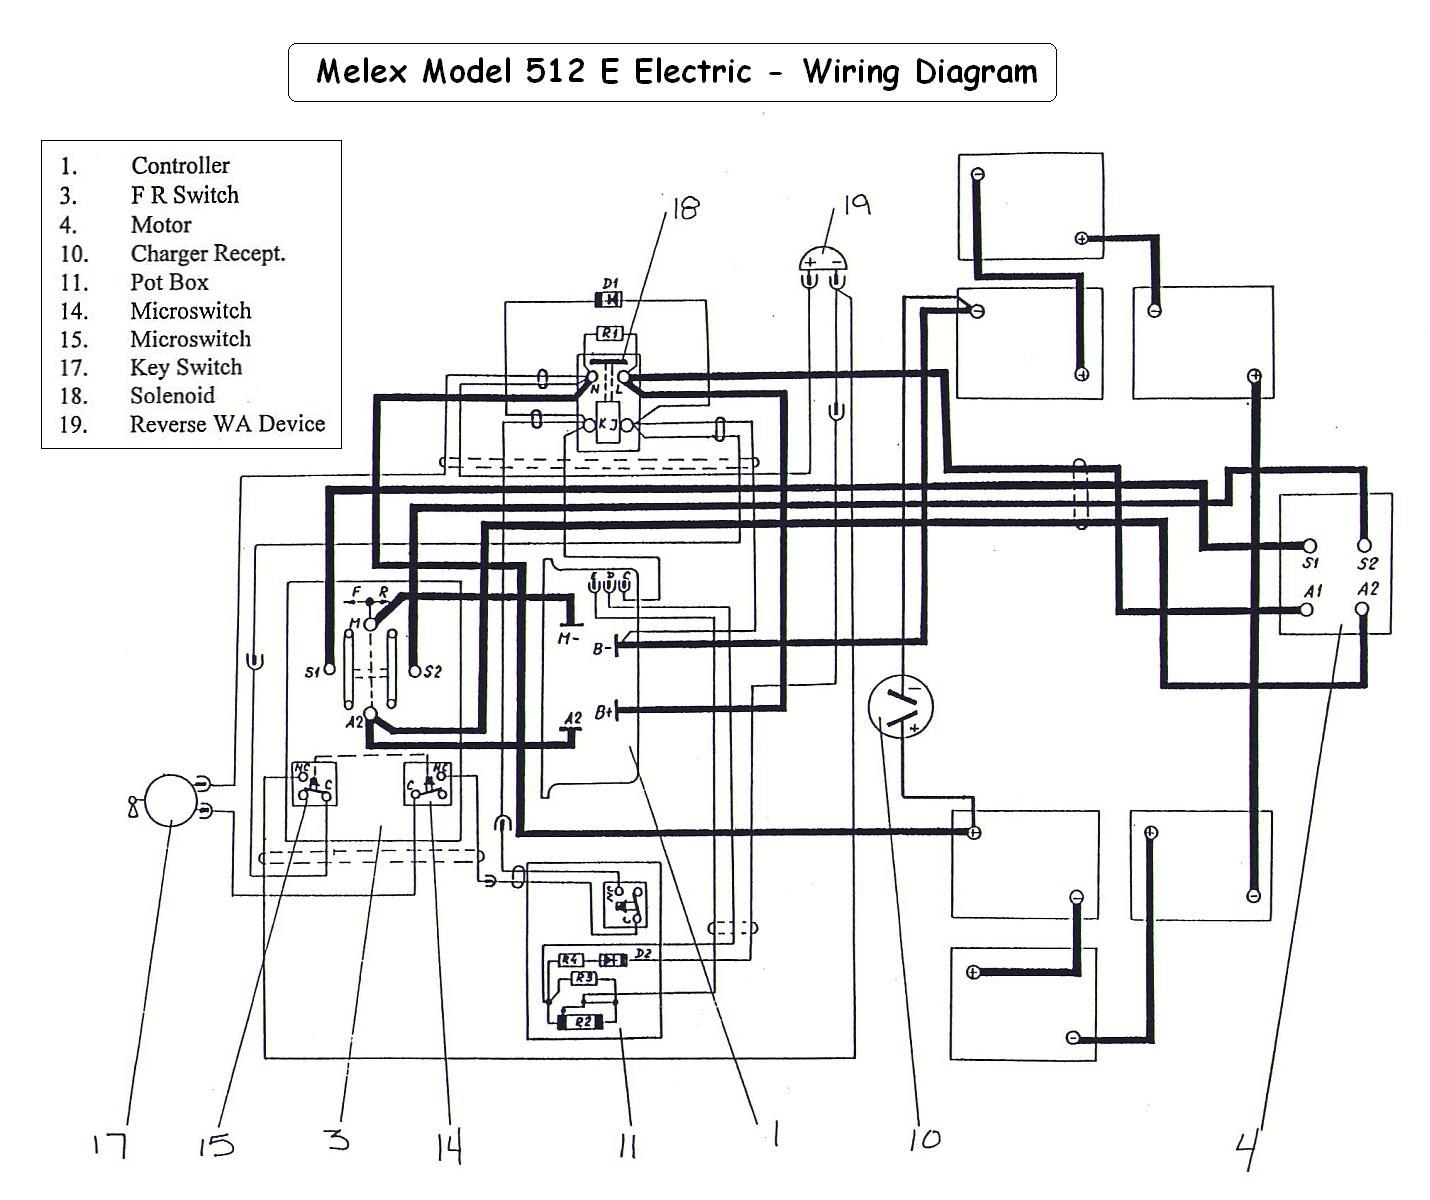 Melex512E_wiring_diagram vintagegolfcartparts com golf cart diagrams at gsmx.co